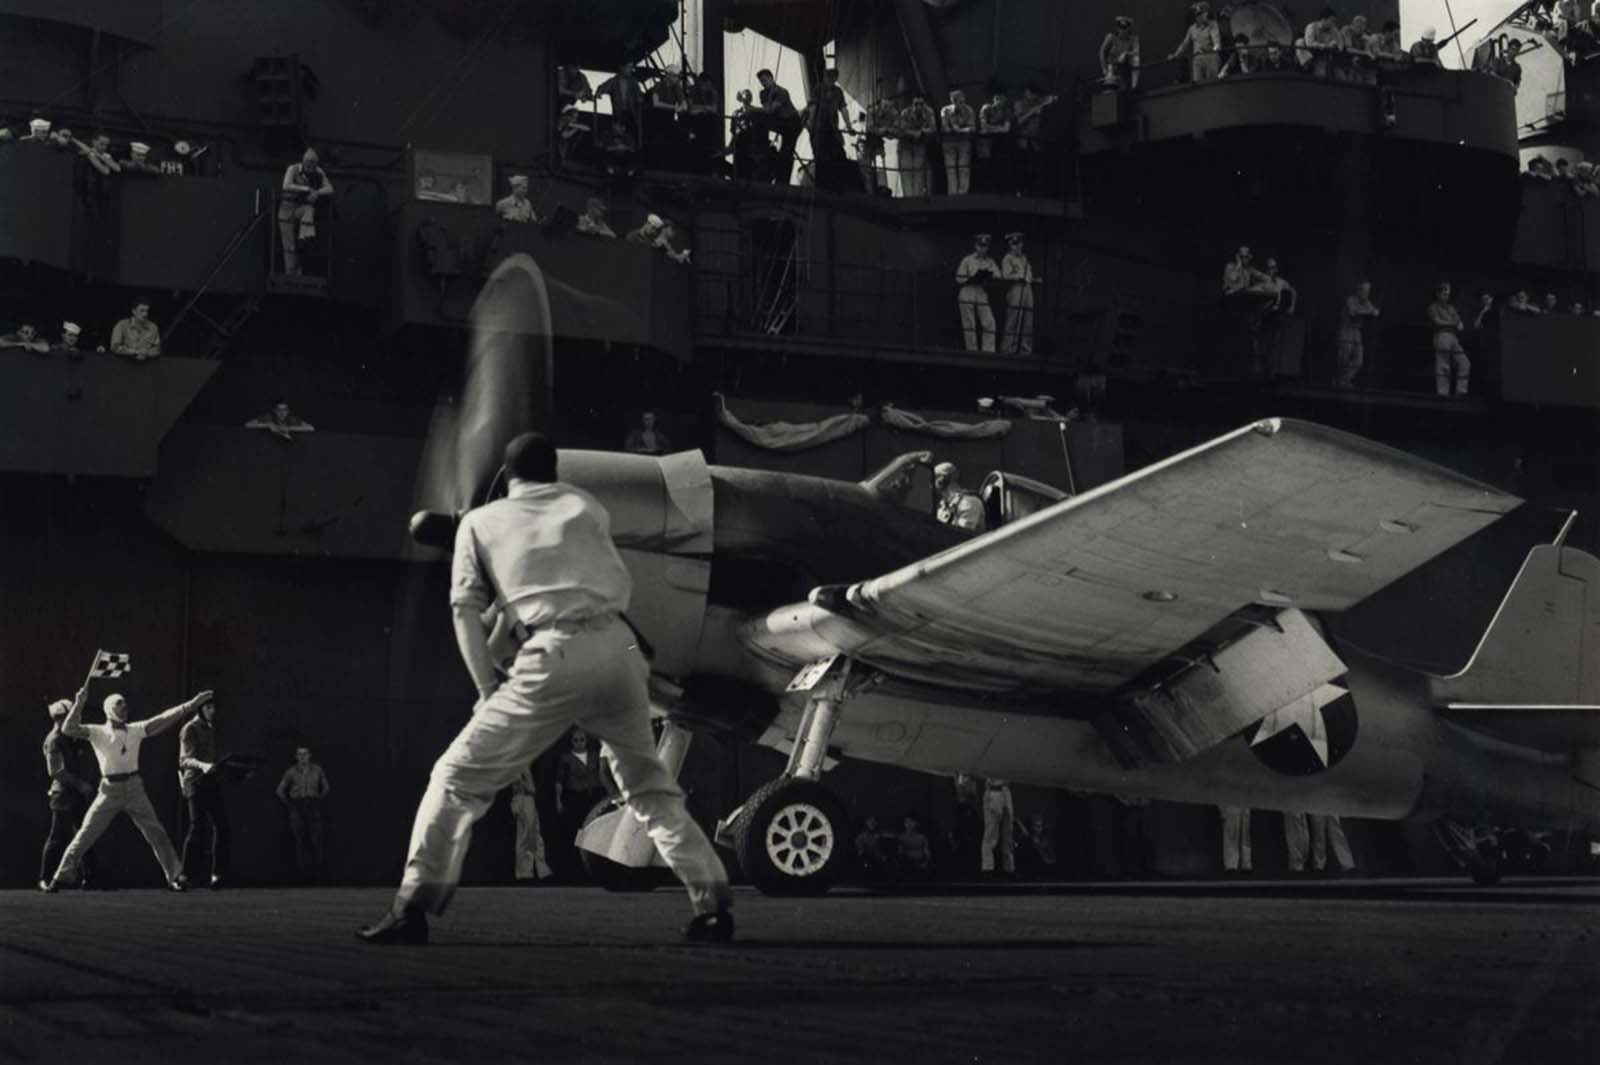 Sailors Watch as Aircraft Takes Off, c. 1943.